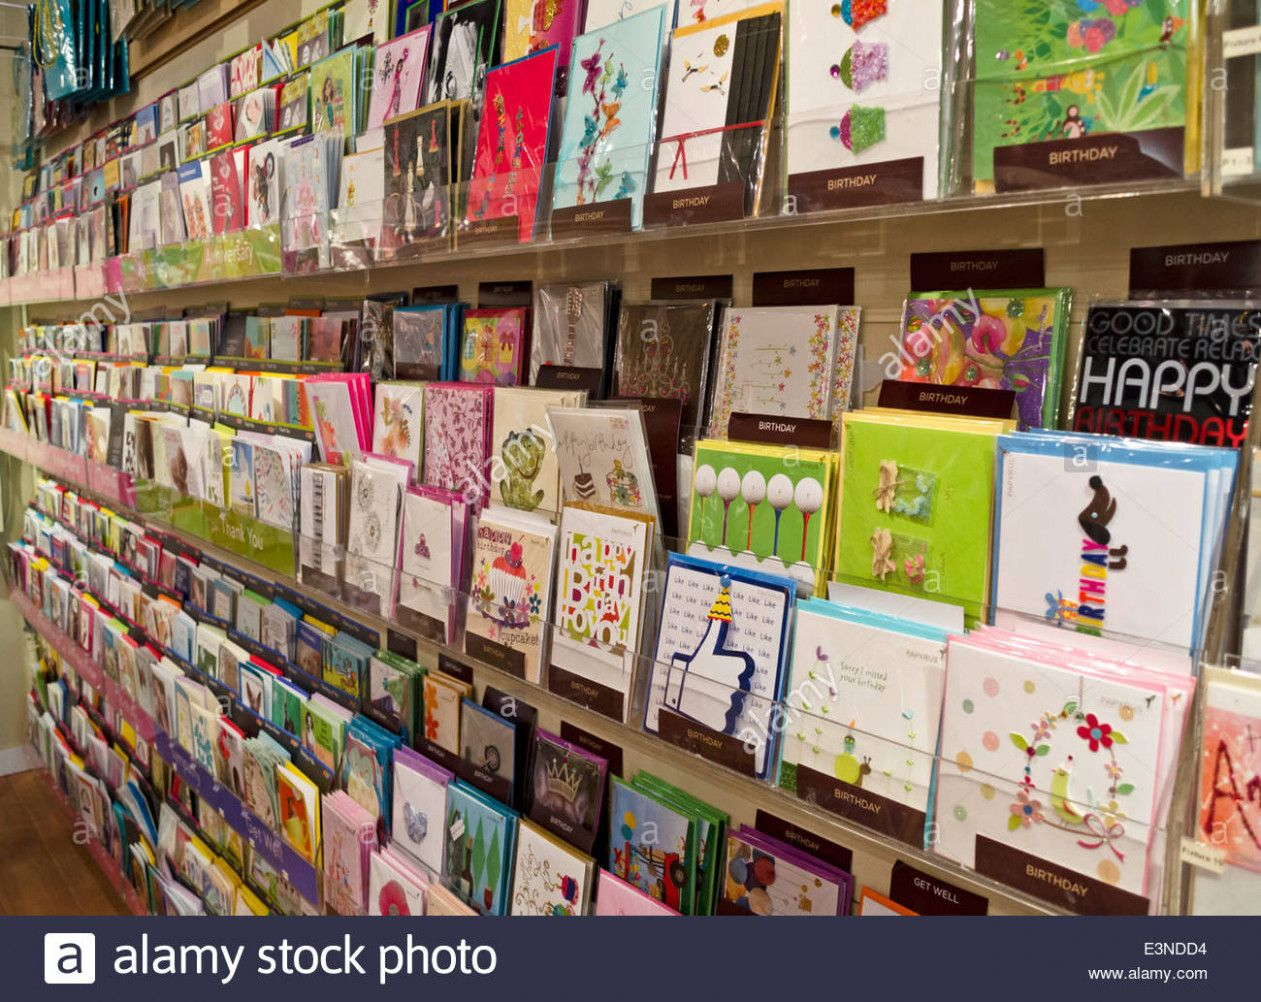 10 Top Birthday Card Shop Near Me In 2021 Greeting Card Shops Birthday Cards Unique Cards